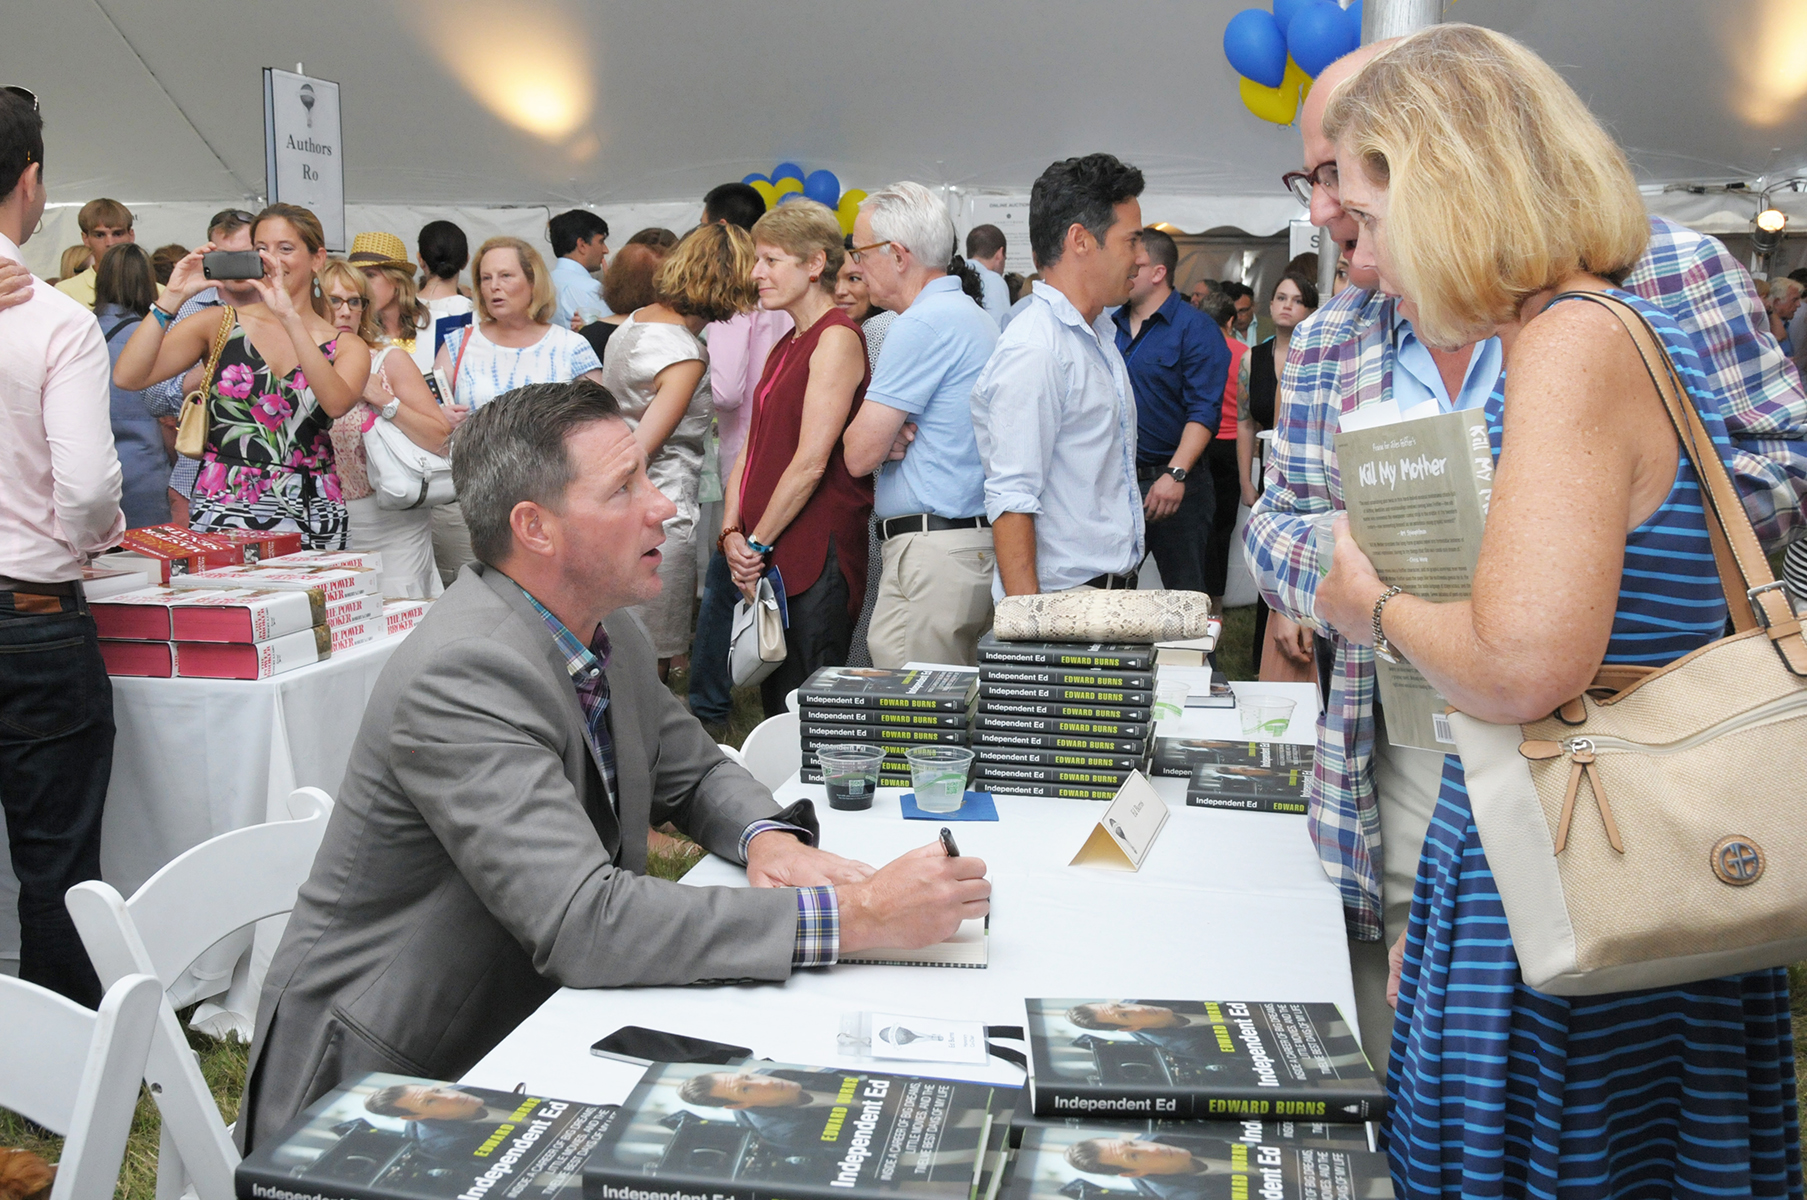 Ed Burns, Honorary Co-Chair of Authors Night